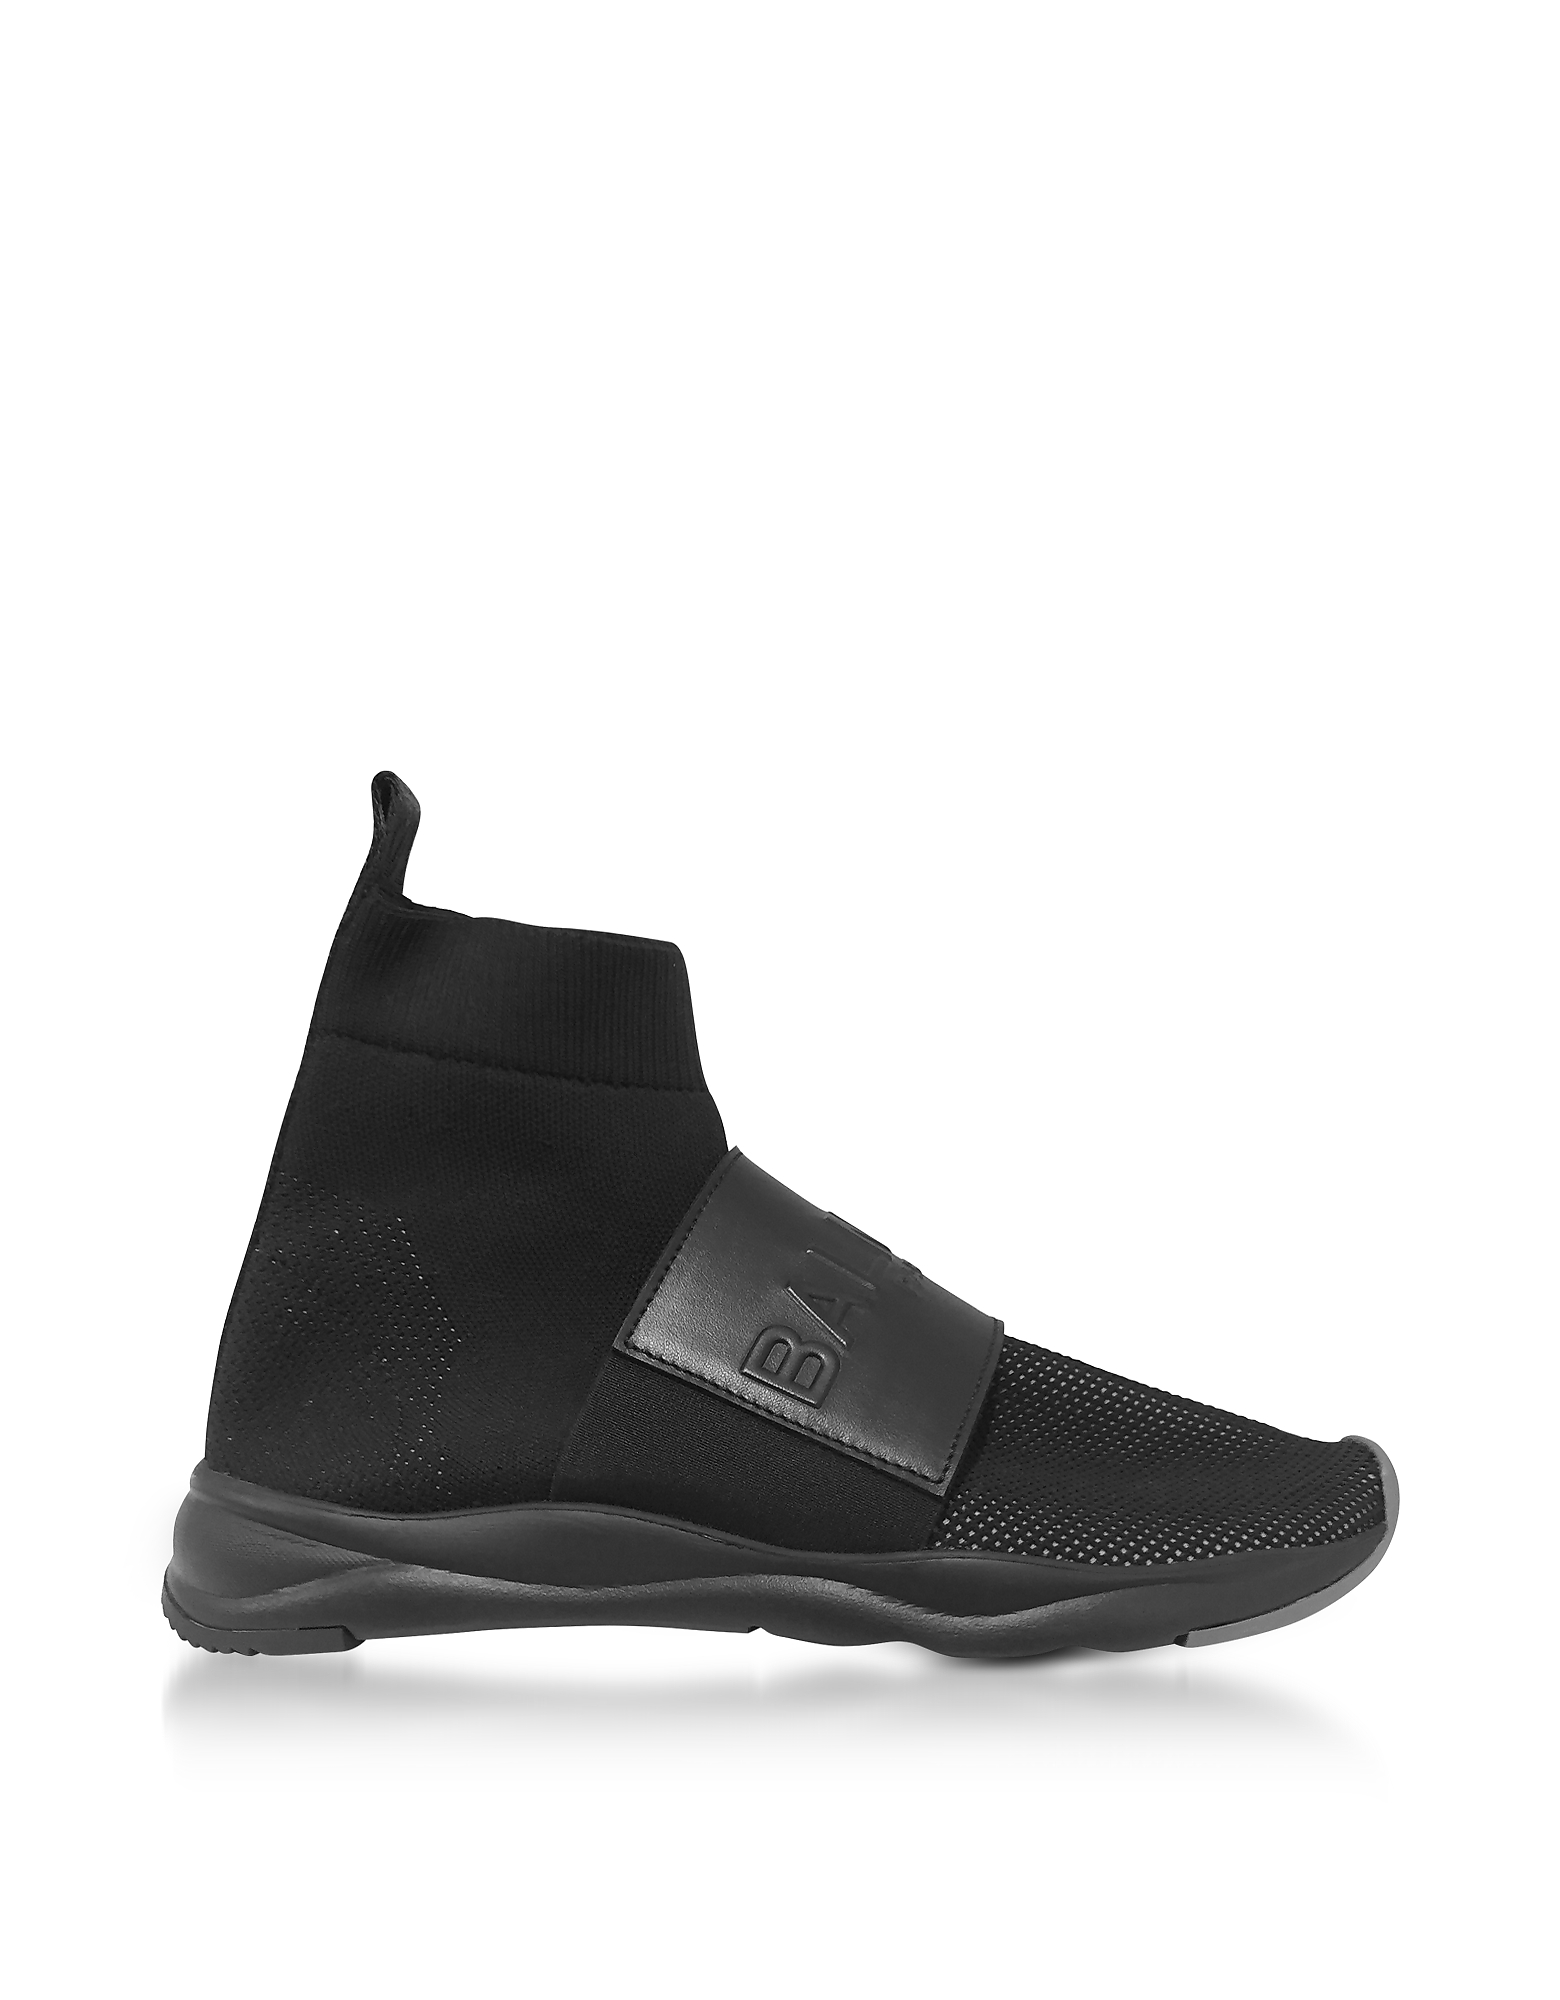 Balmain Shoes, Black Nylon and Leather Cameron Running Men's Snekers